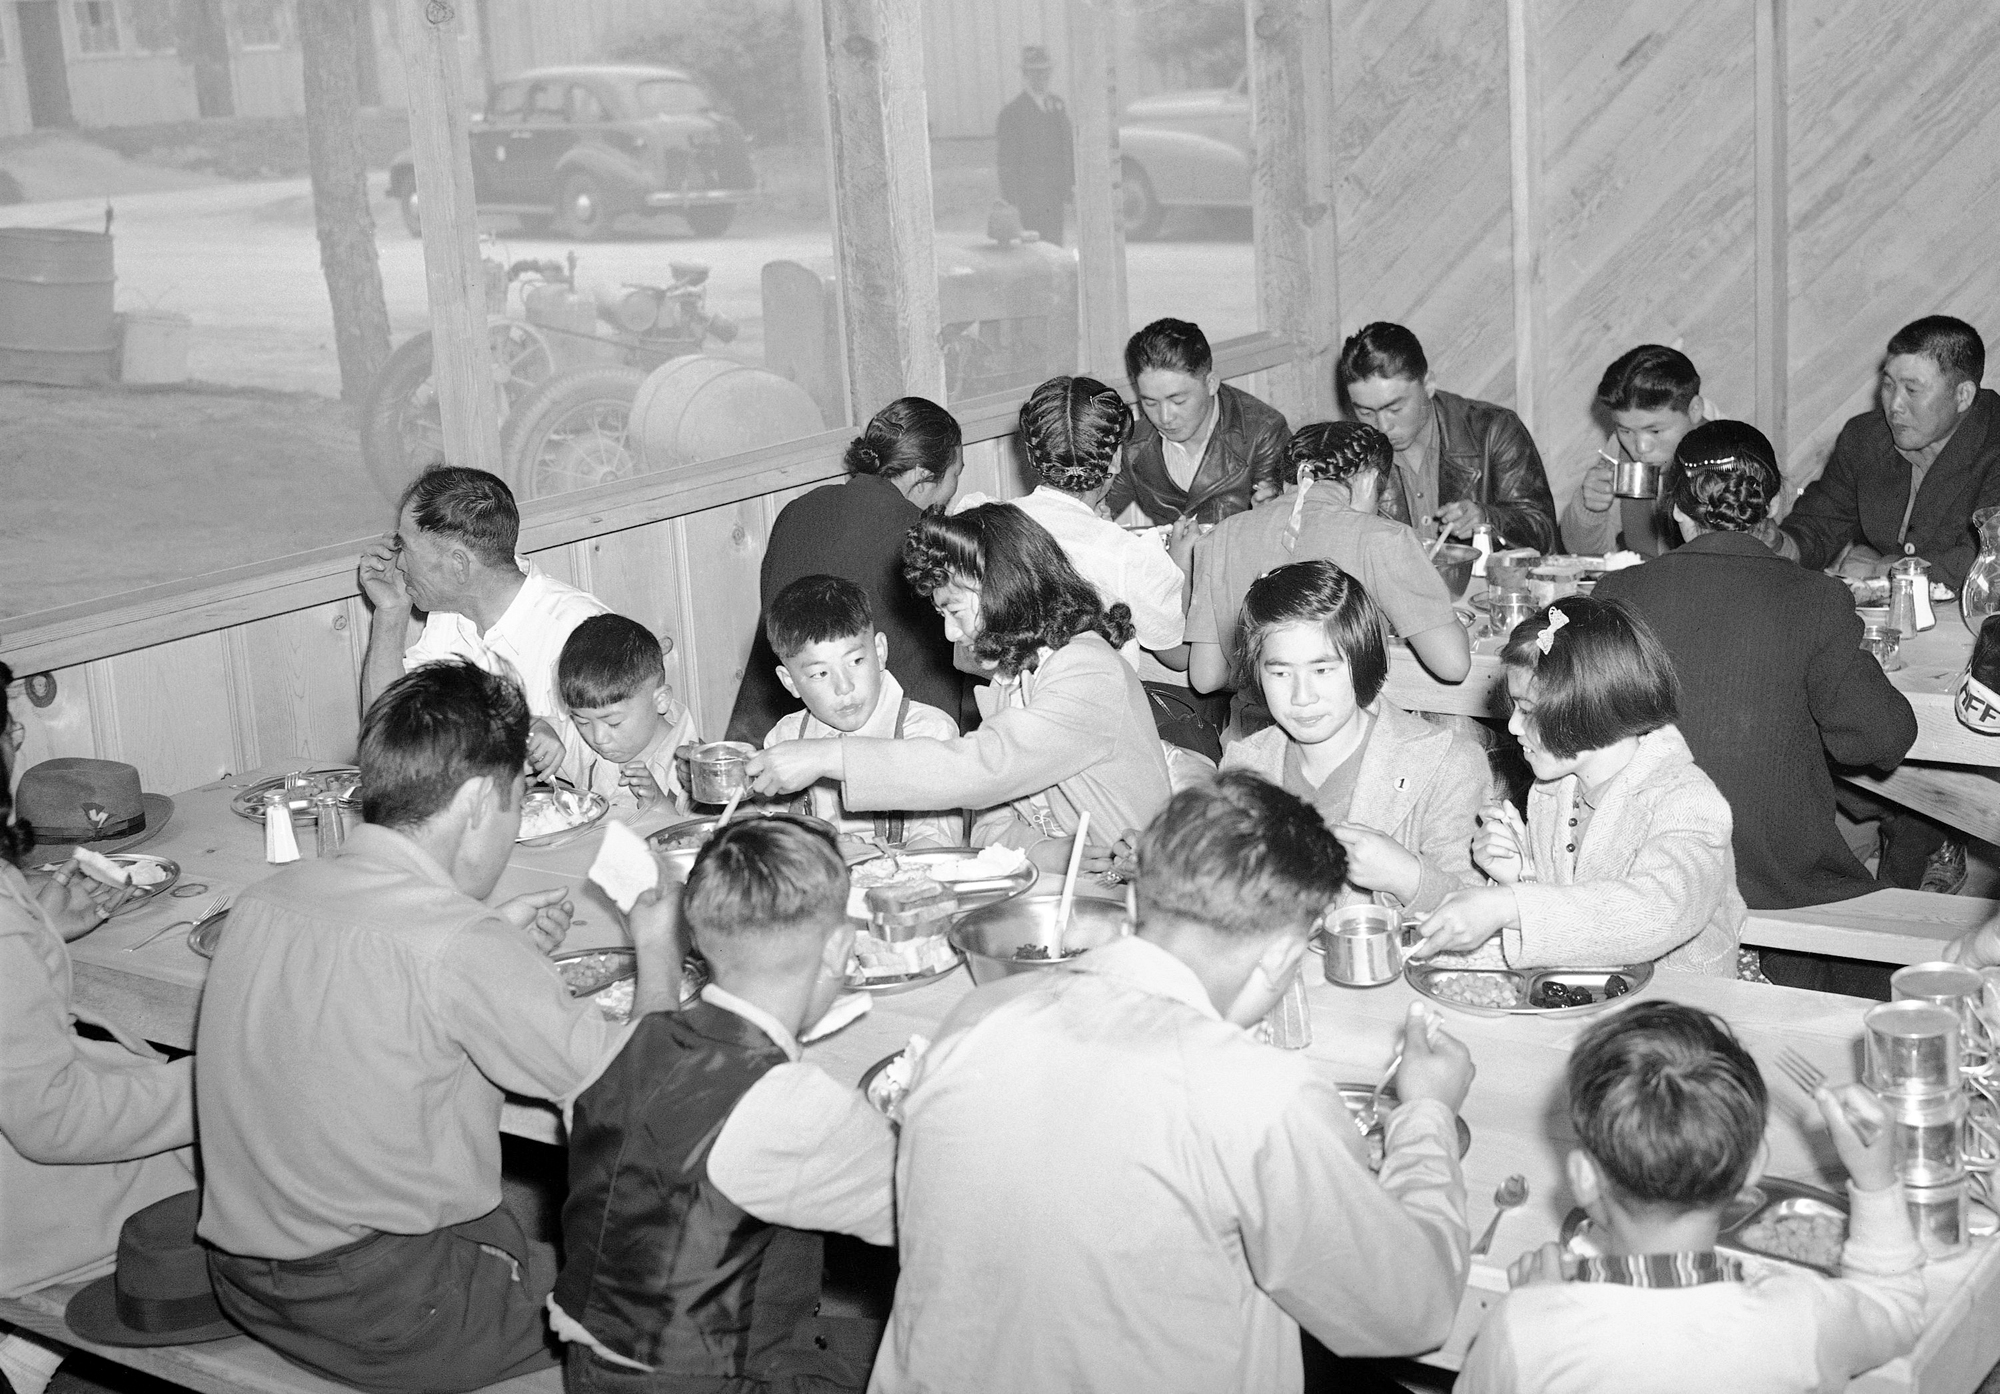 The U.S. government provided hot meals for the first Japanese at the Santa Anita Race track reception center near Los Angeles, California April 3, 1942.